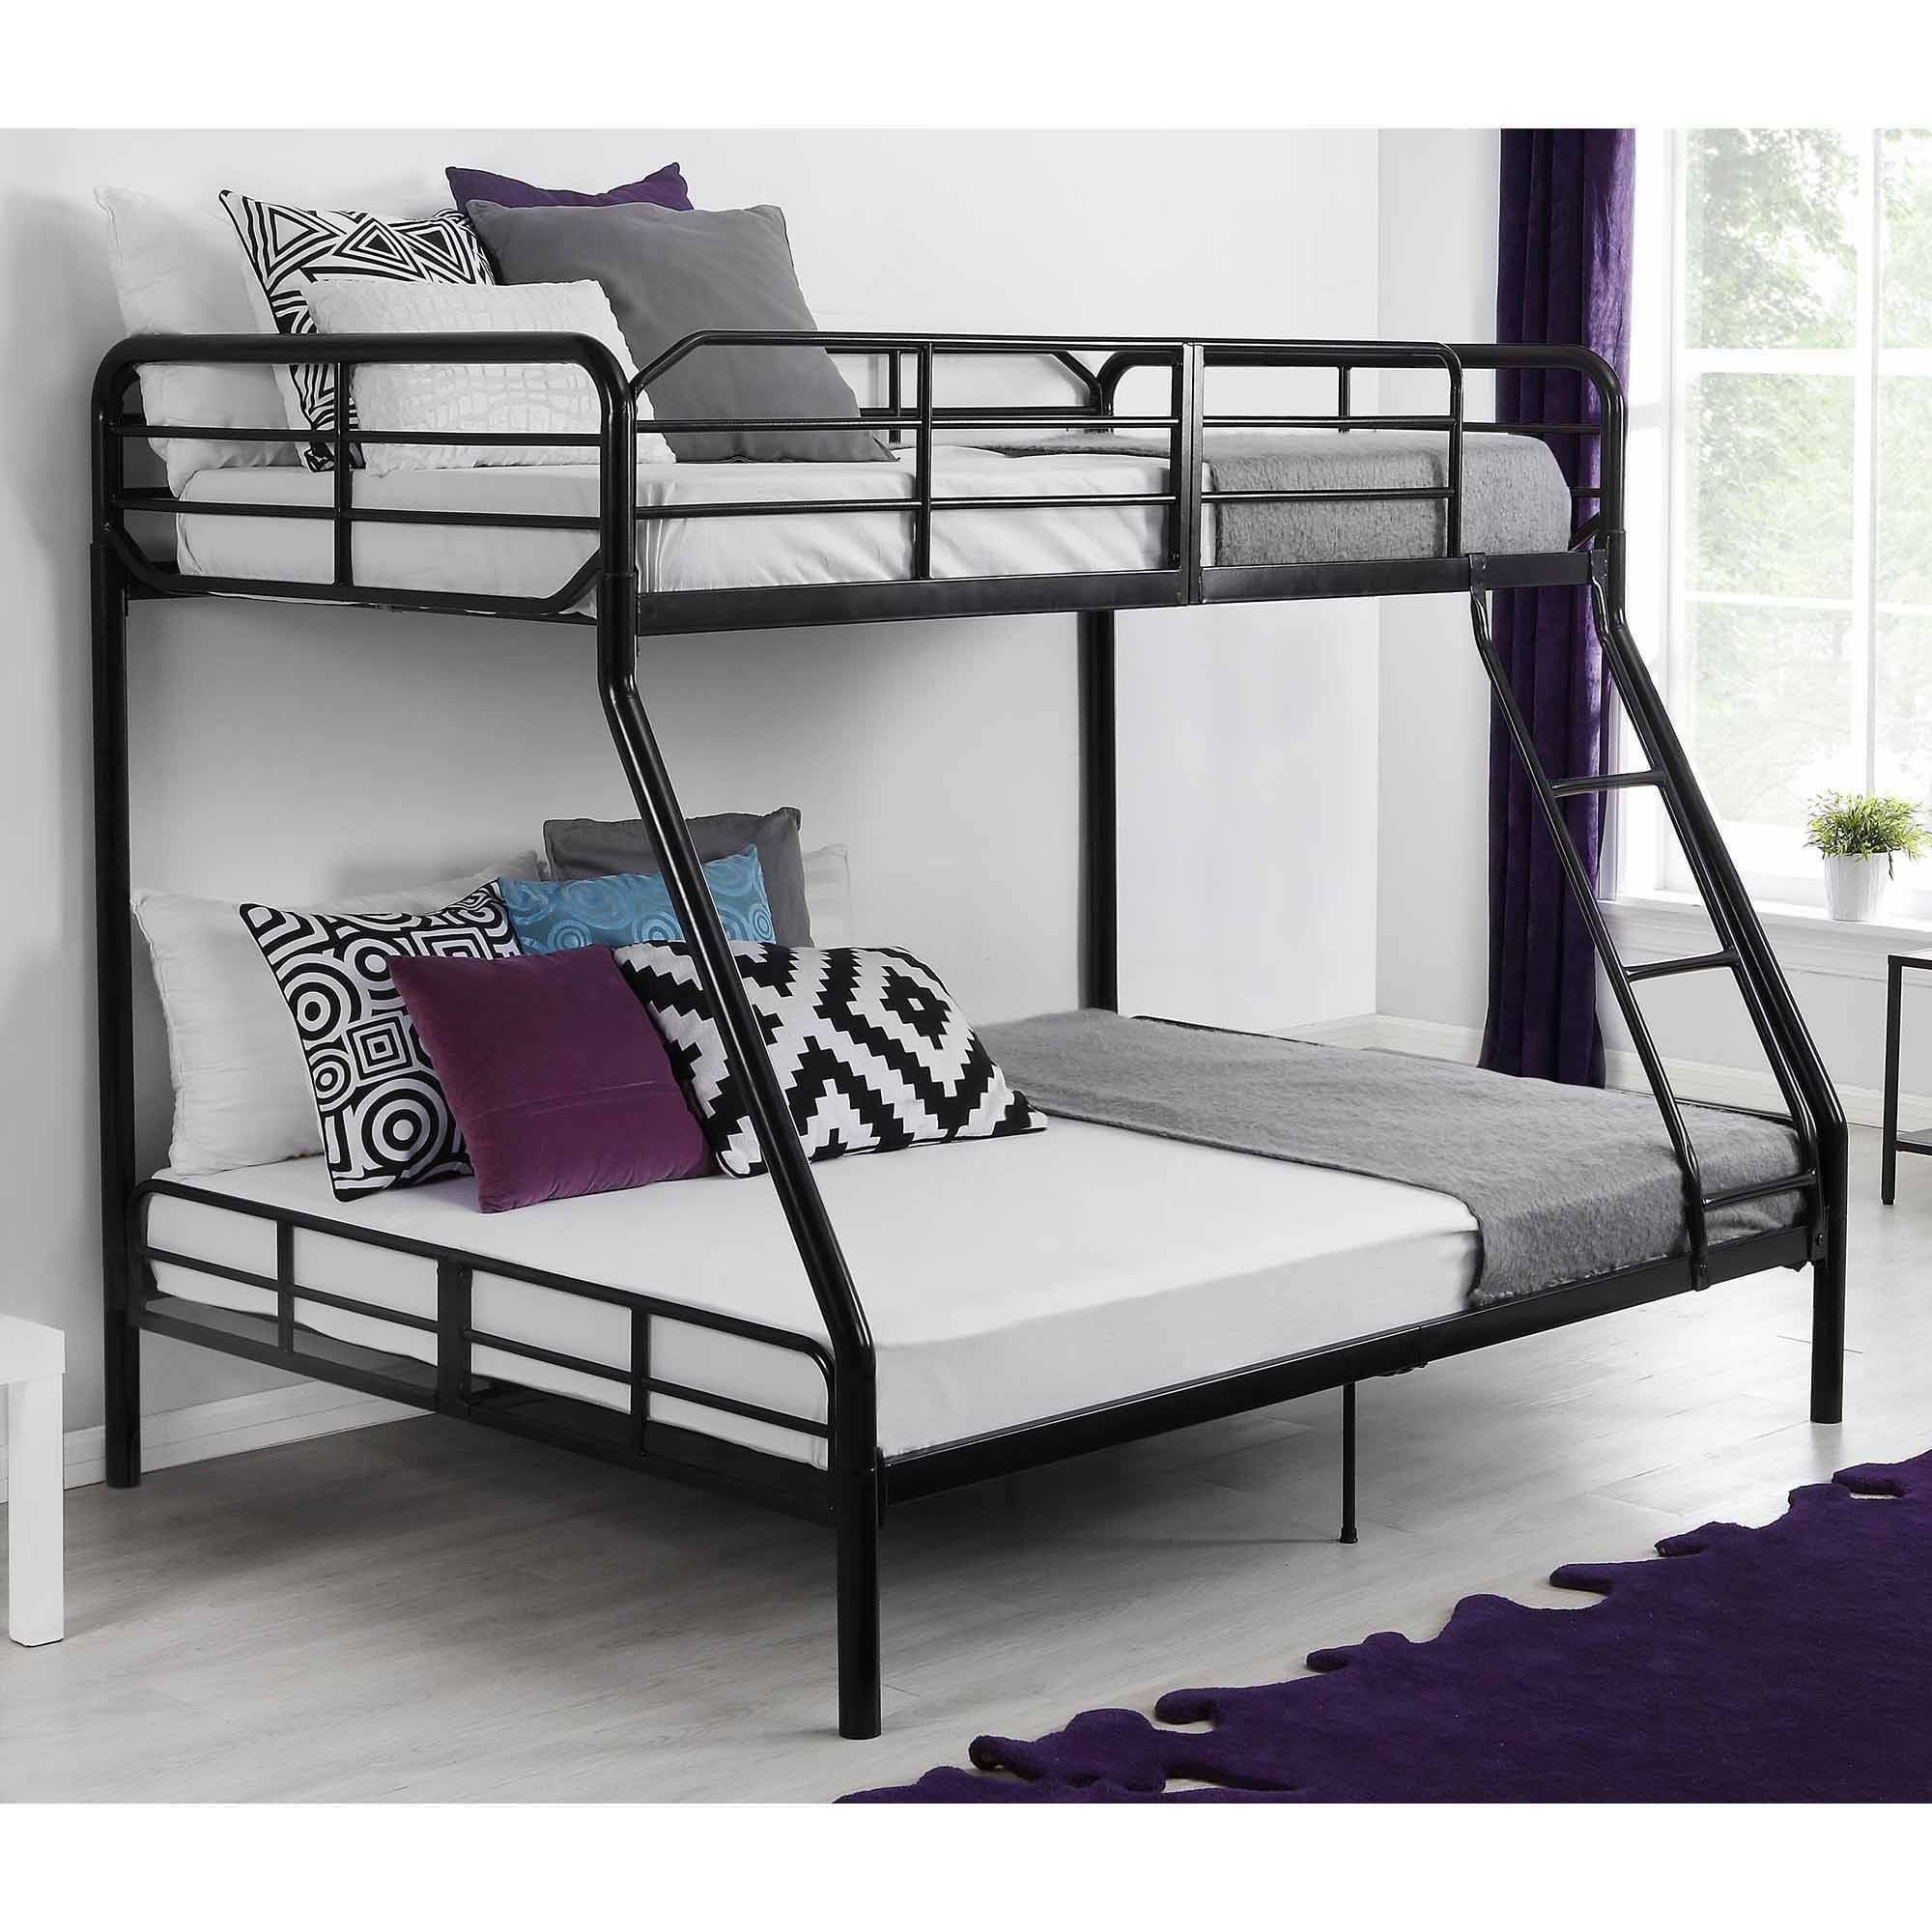 Bunk Beds For Sale Near Me Cheaper Than Retail Price Buy Clothing Accessories And Lifestyle Products For Women Men